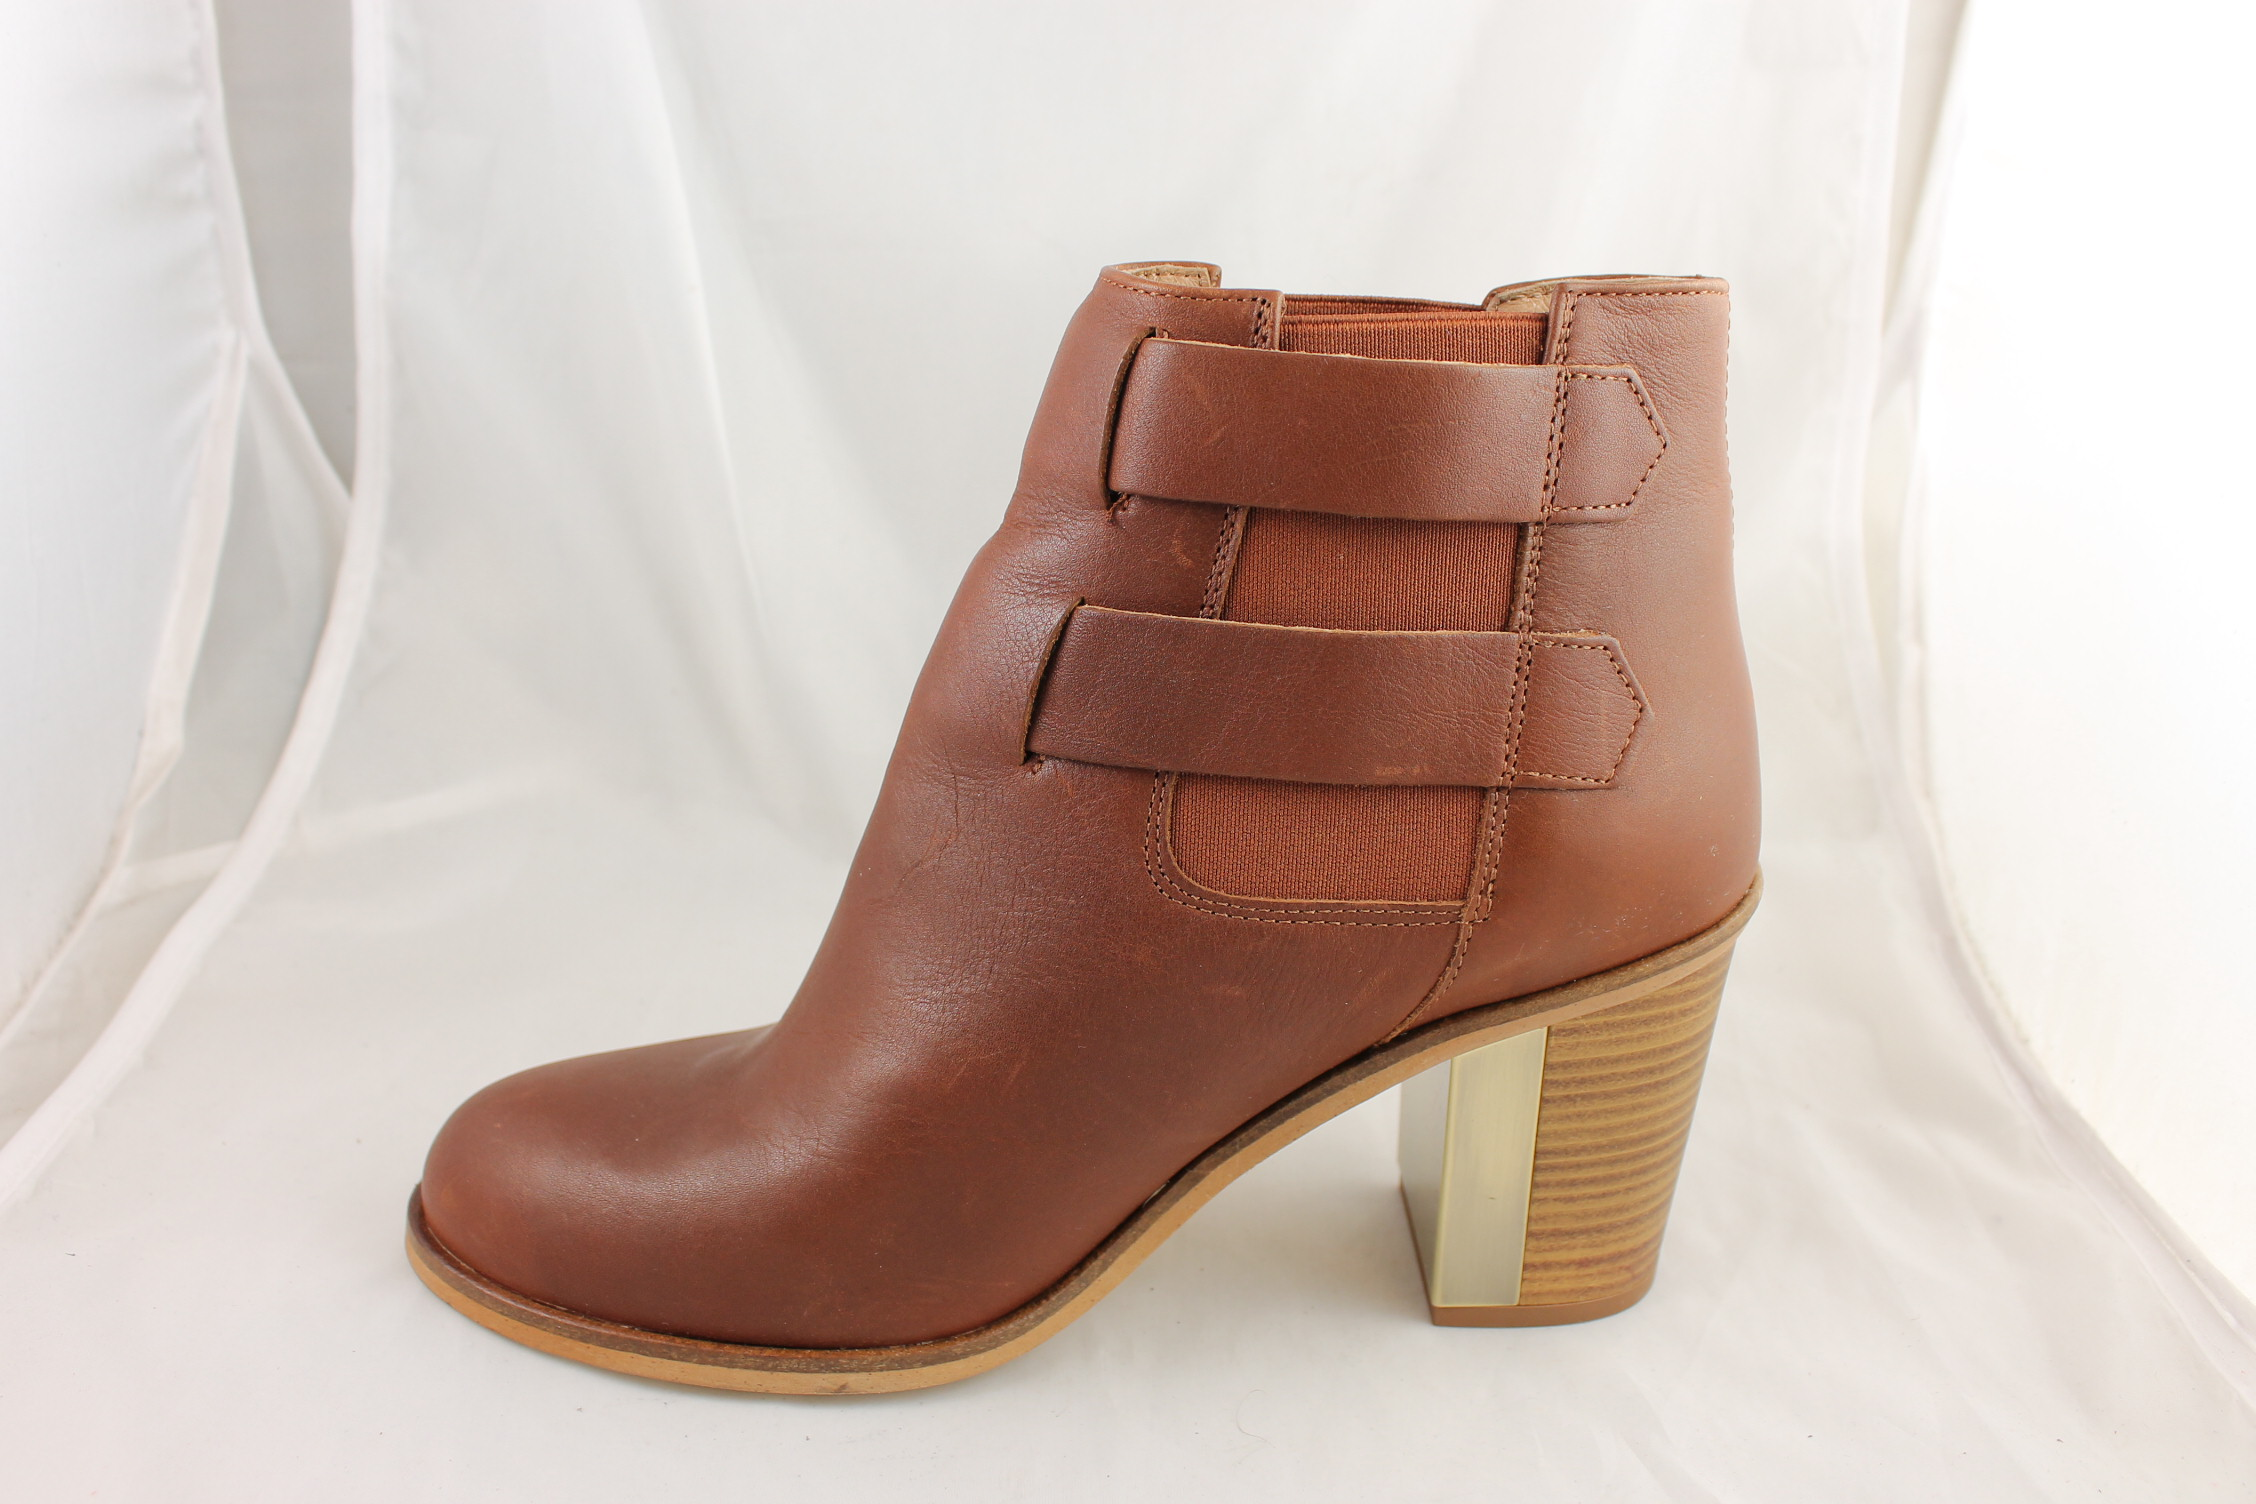 Womens-Office-Florence-Elastic-Buckle-boots-TAN-LEATHER-